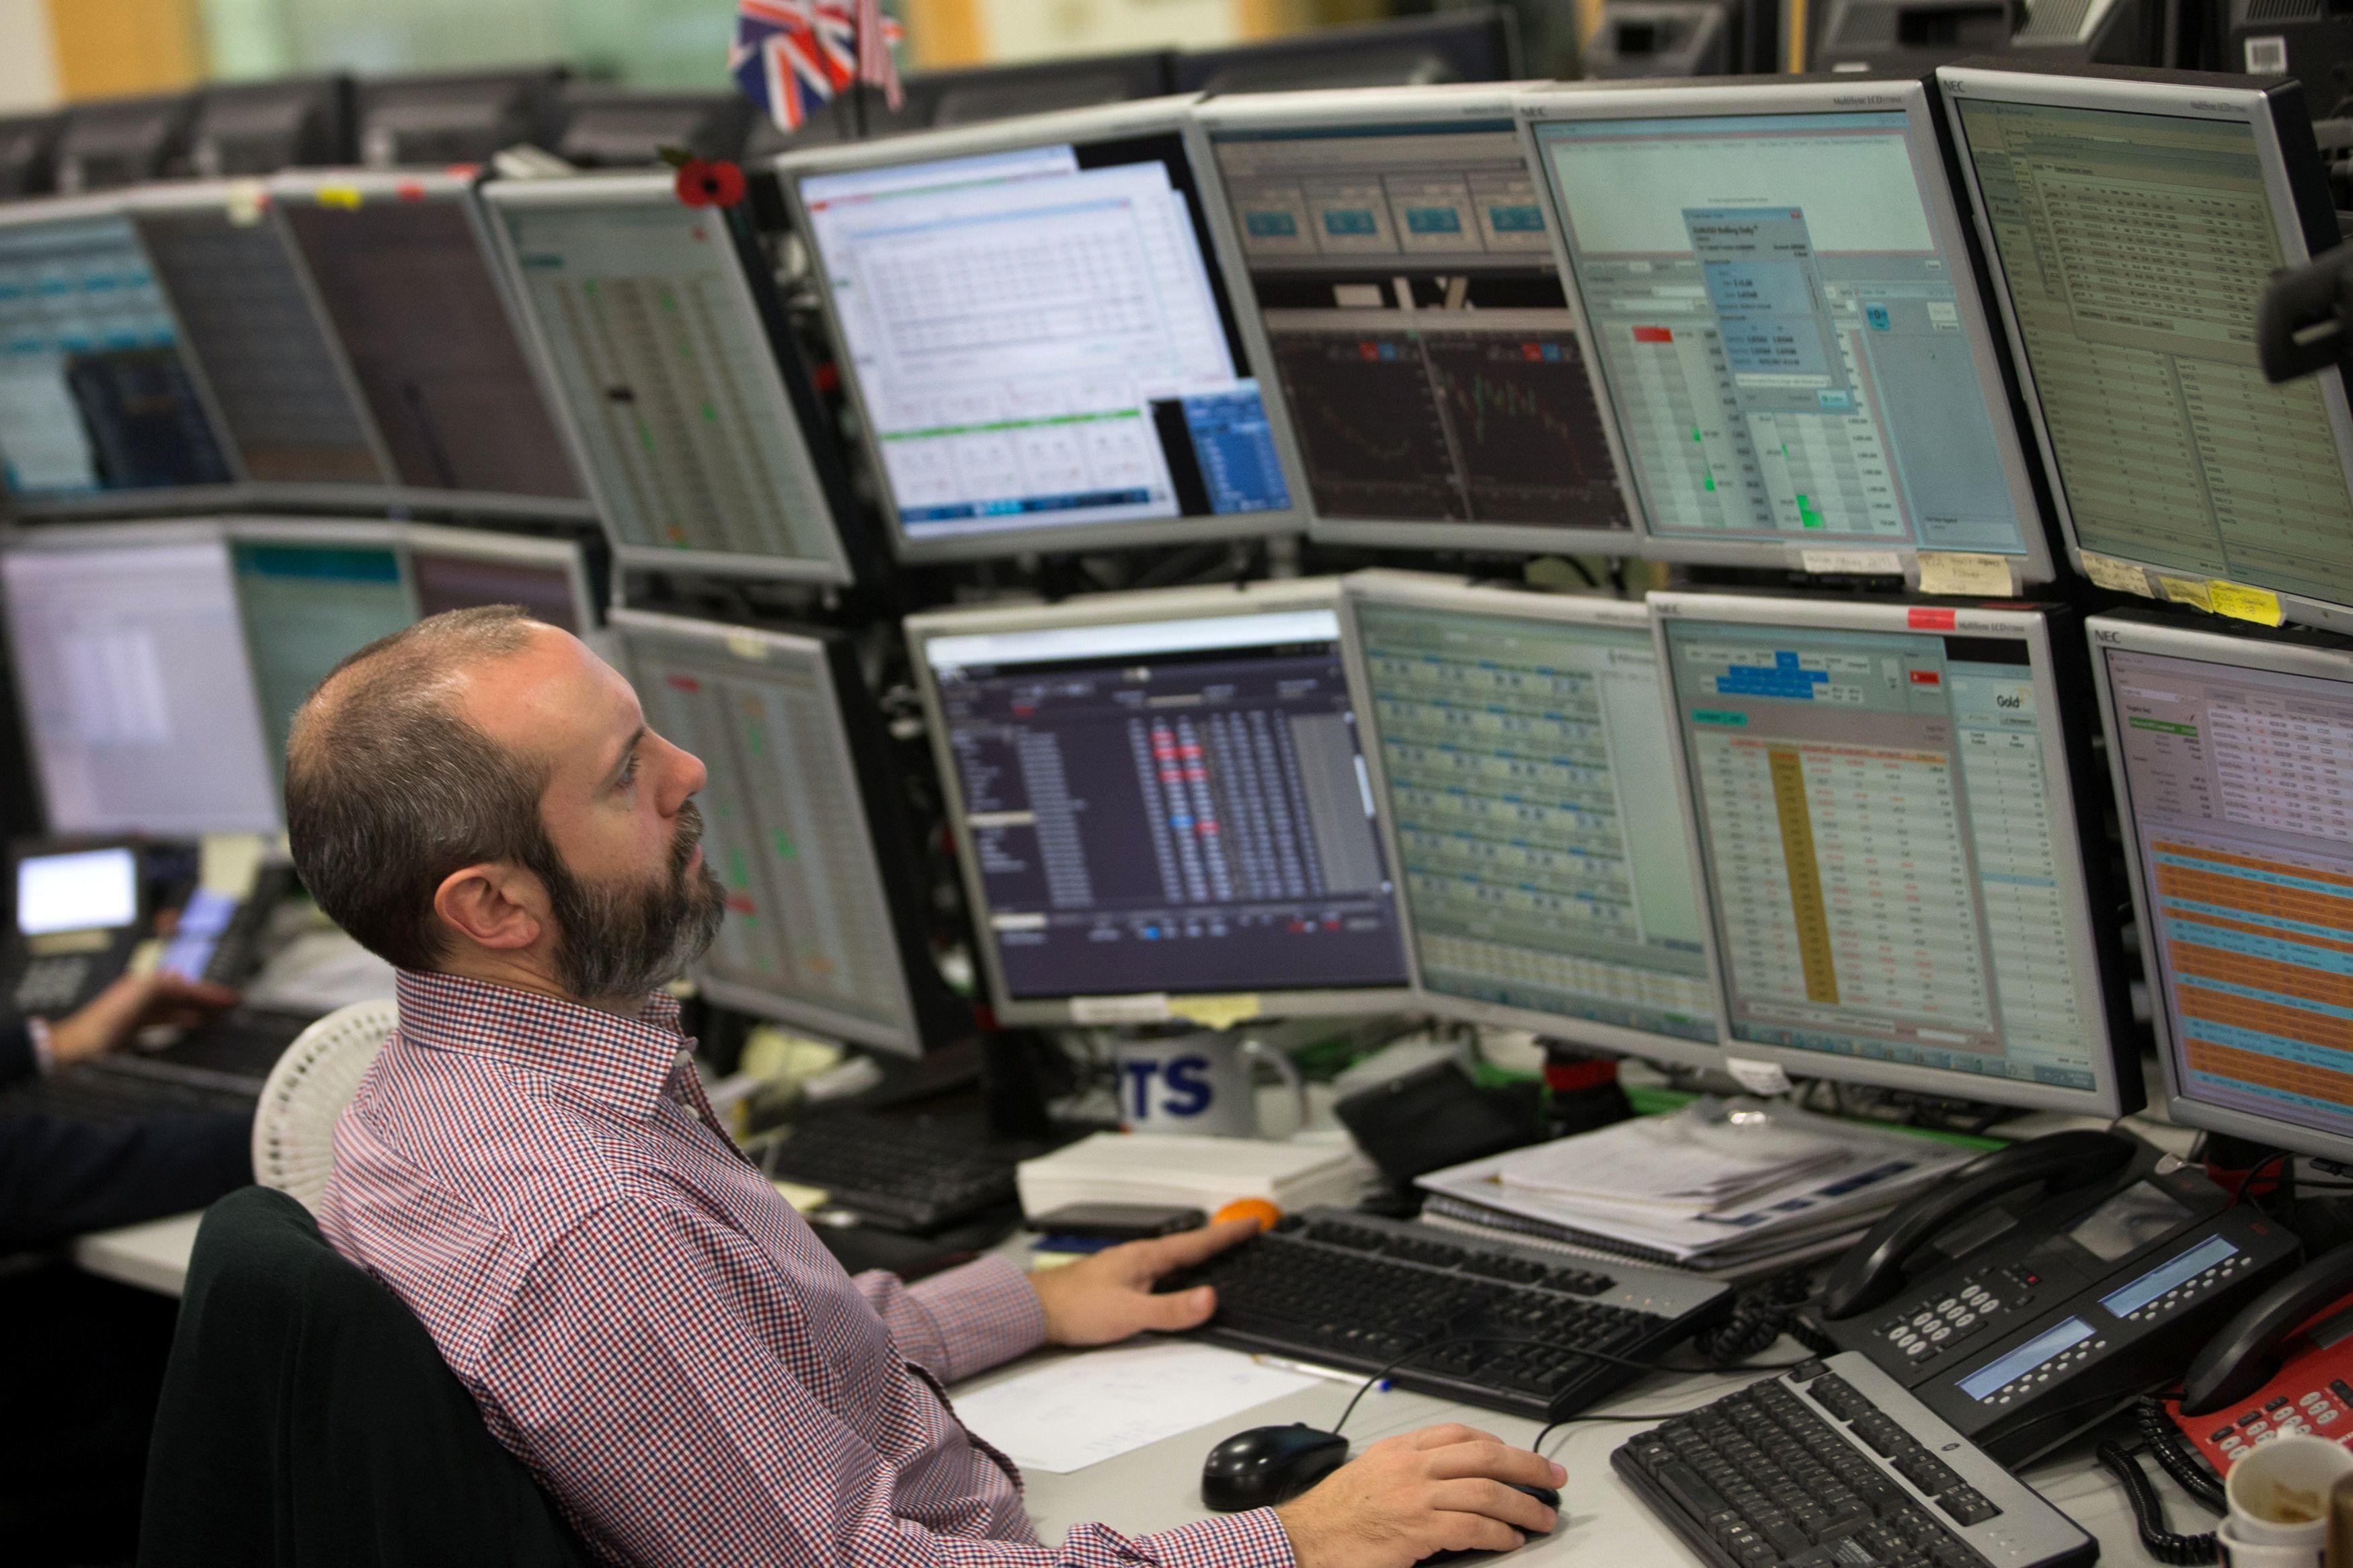 FTSE 100 Falls Almost 200 Points After Dow Jones' Huge Single-Day Drop